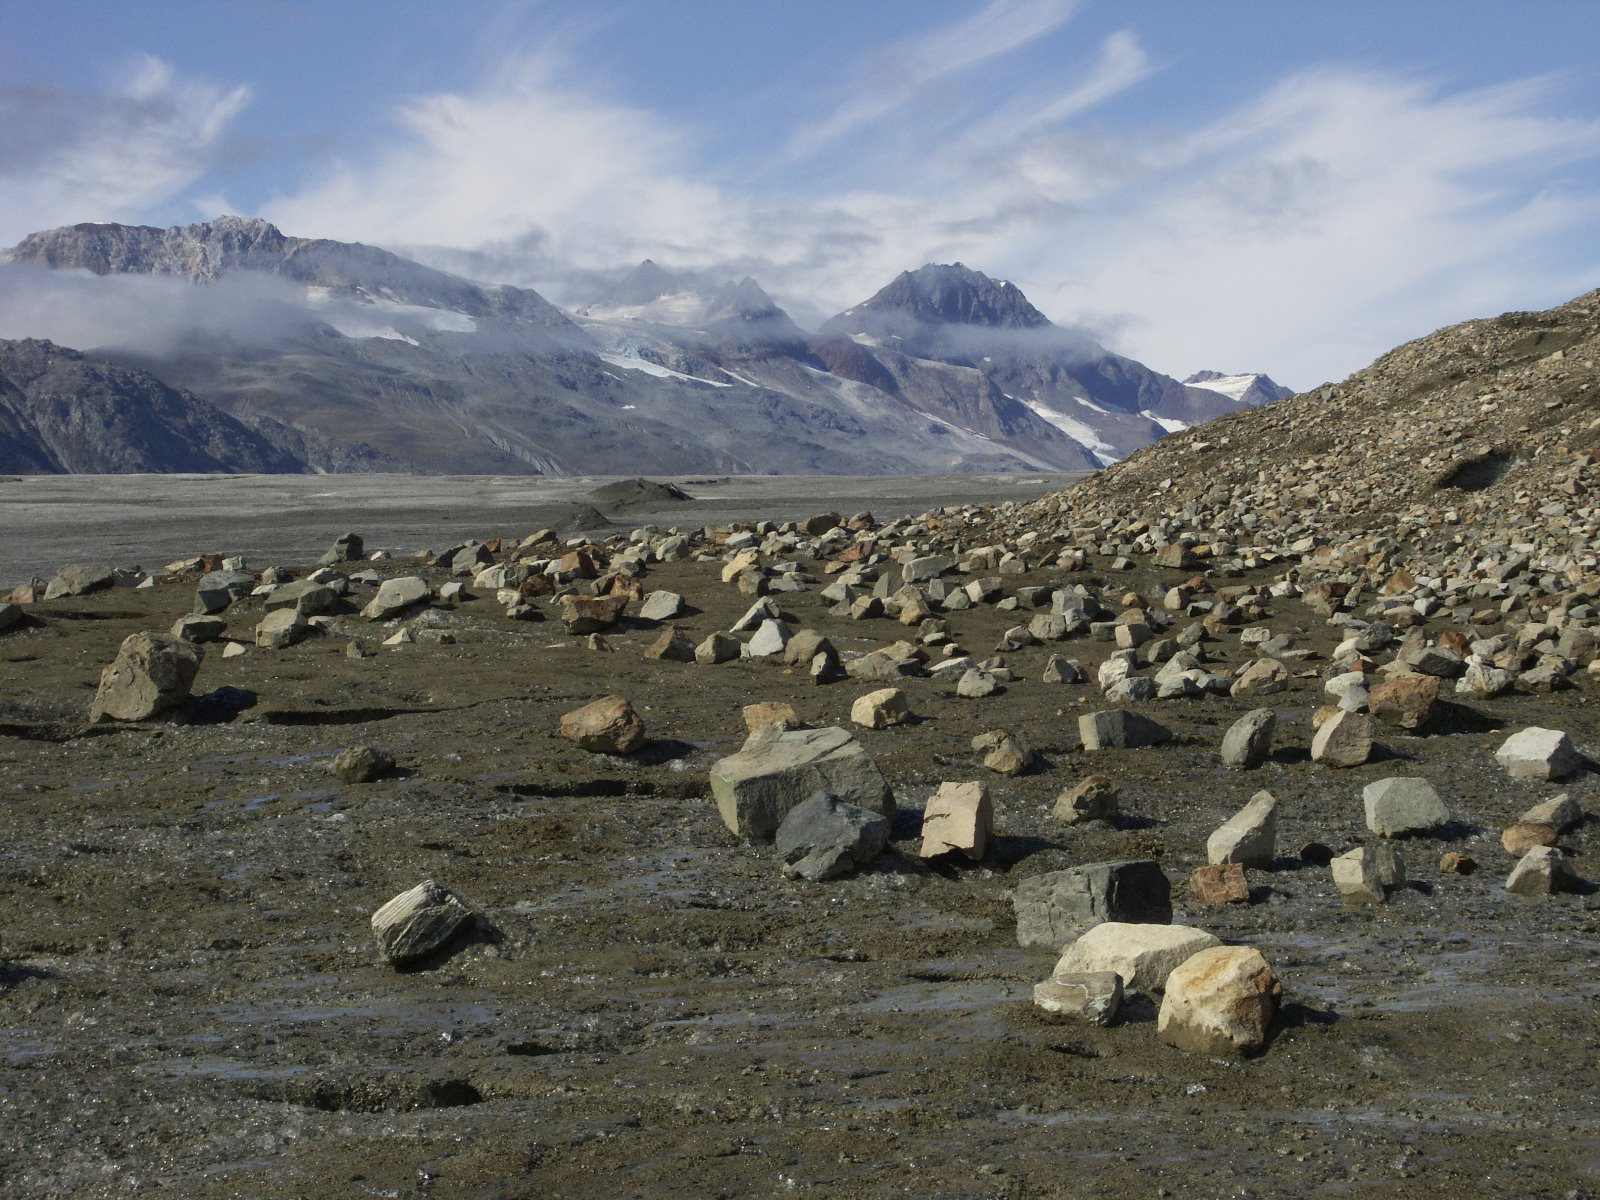 Rocks scatter areas where ice has melted.